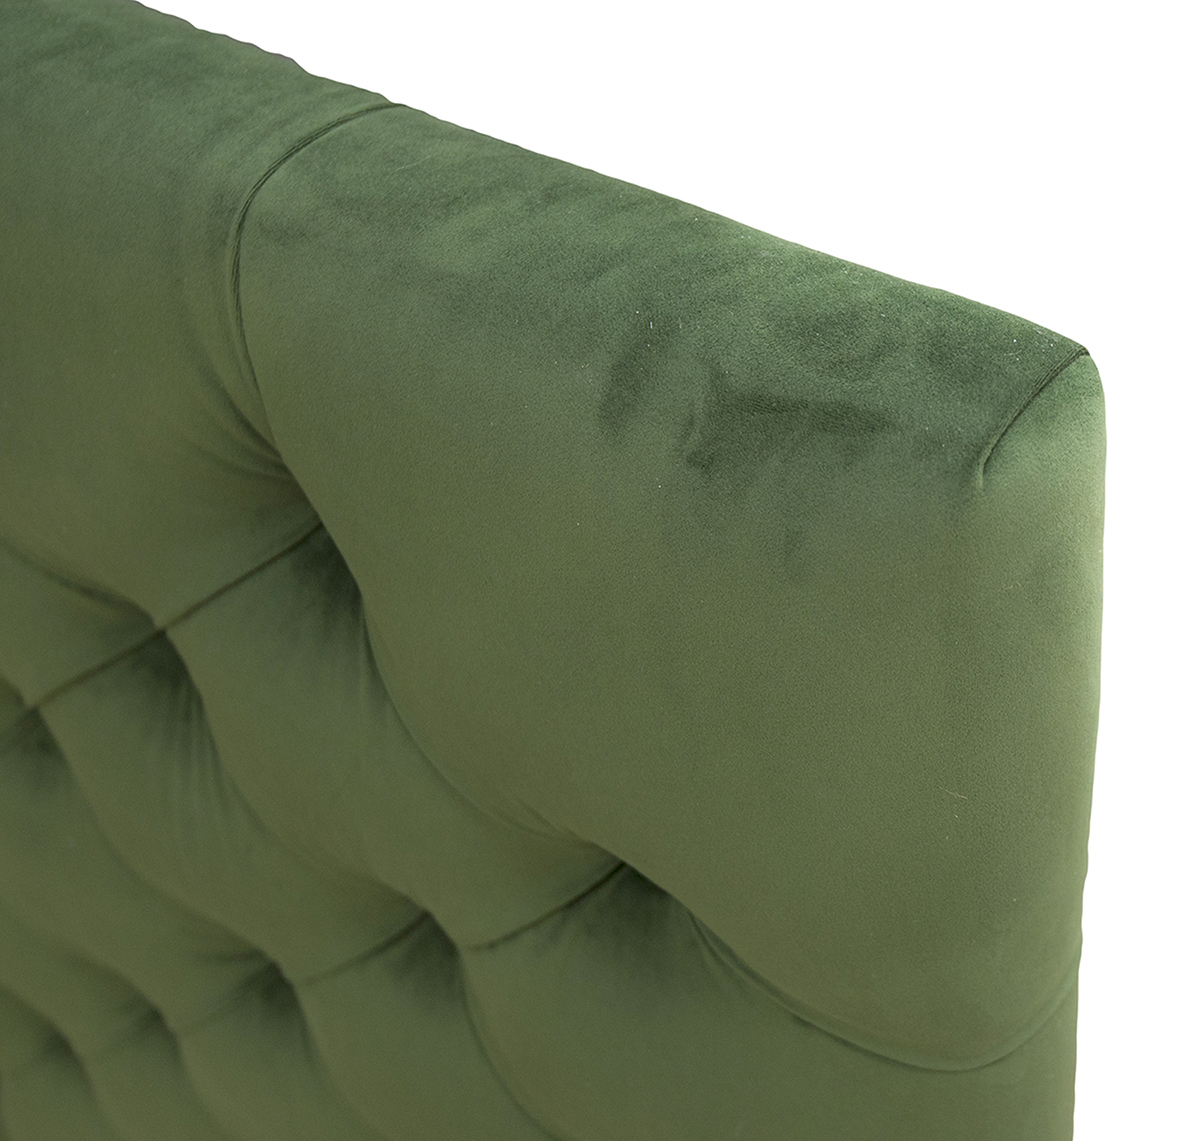 Deep Button Headboard 6ft Side in Amalfi Forrest Platinum Fabric Collection